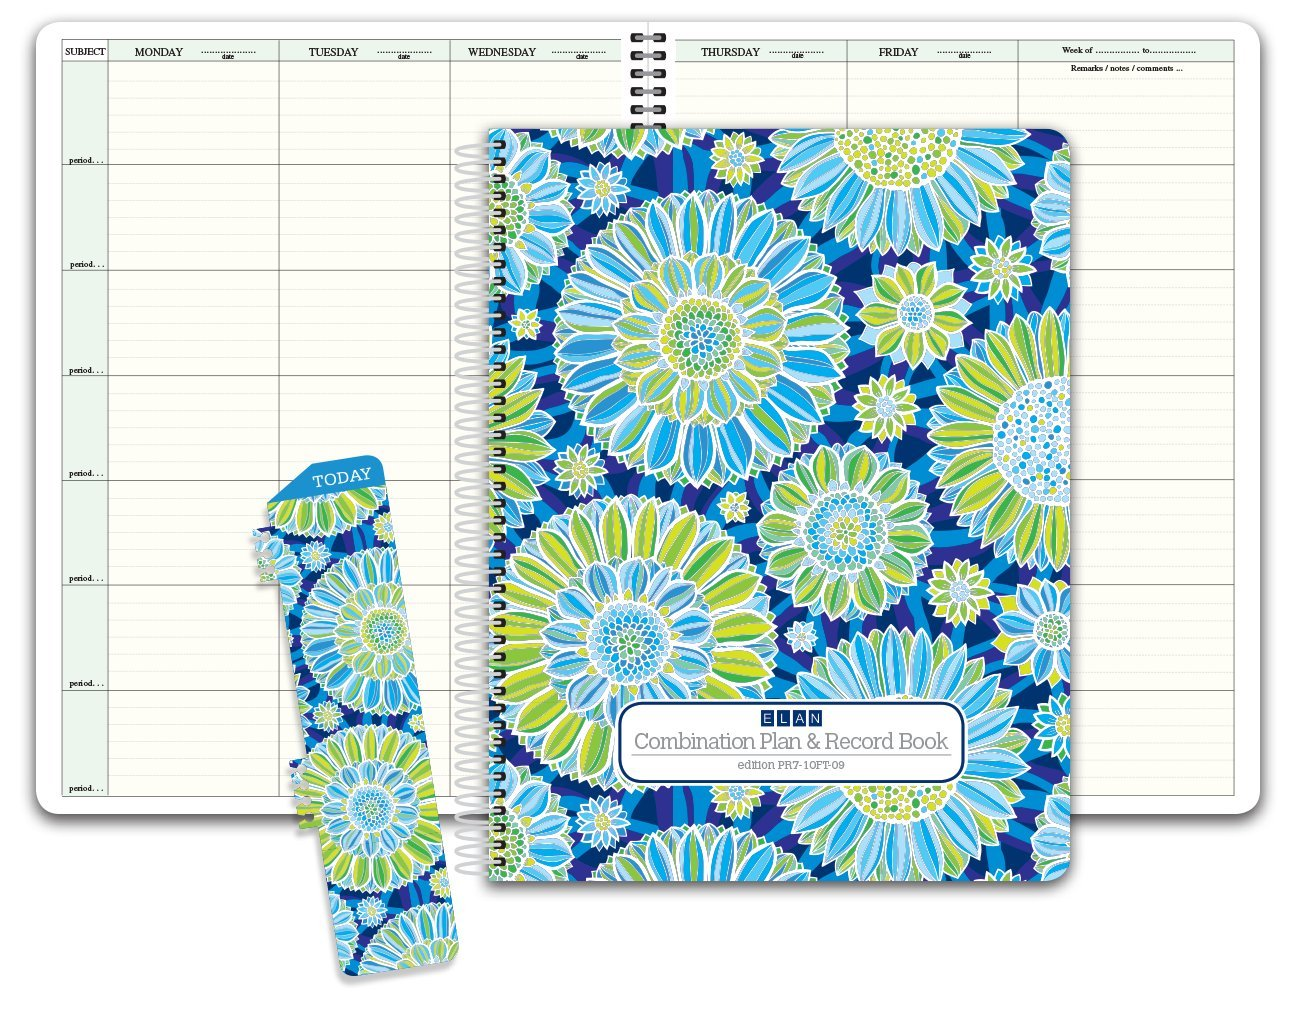 Hardcover Combination Plan and Record Book: One Efficient 8.5'' x 11'' Book for Lesson Plans & Grades Combines W101 and R1010 (PR7-10) (+) Bonus Clip-in Bookmark (Blue Green Flowers)